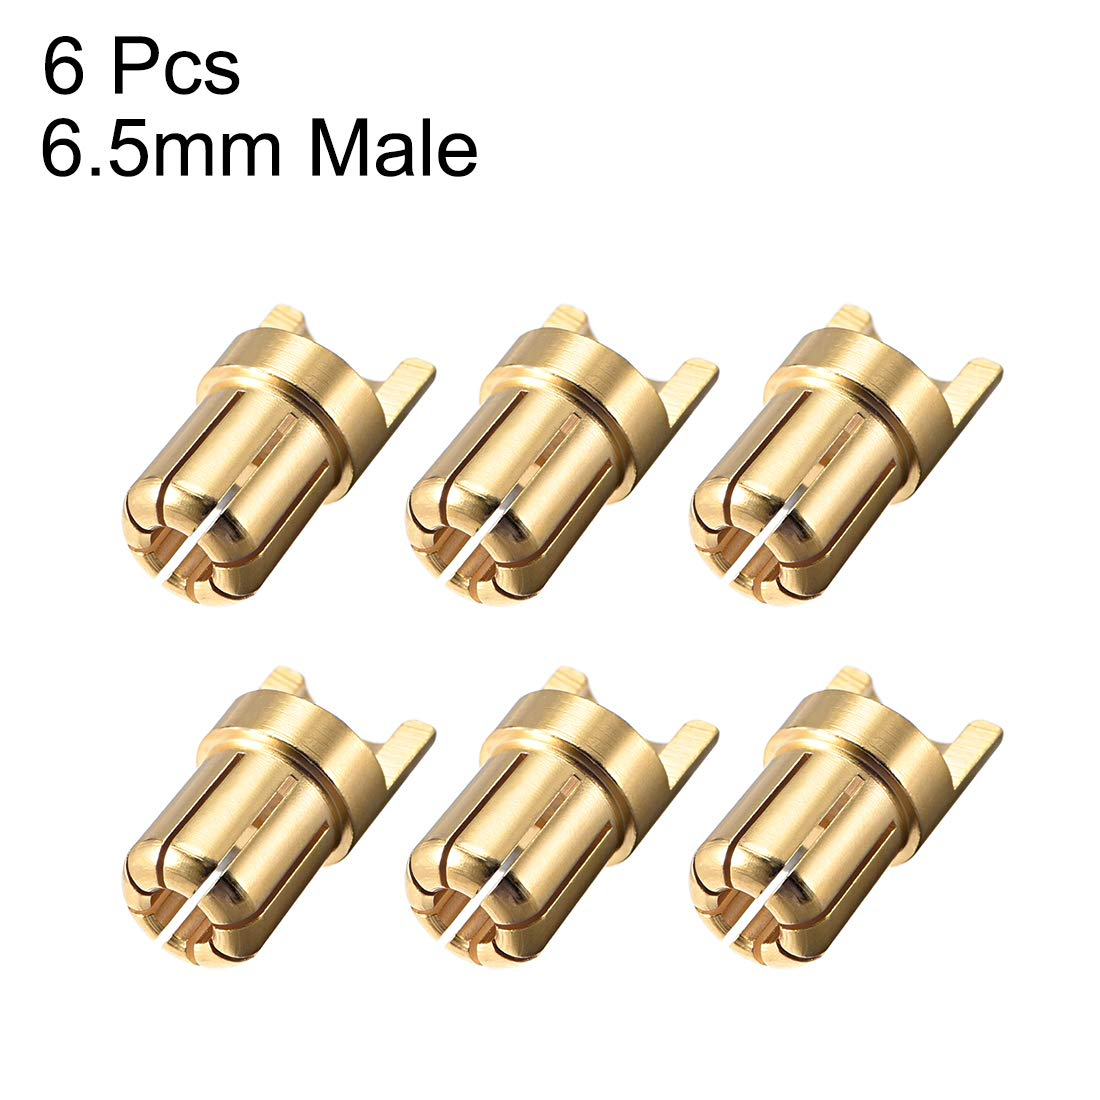 #0240 uxcell 10Pairs 3.5mm Gold Plated Male /& Female Bullets Connectors Plugs 10 Male + 10 Female